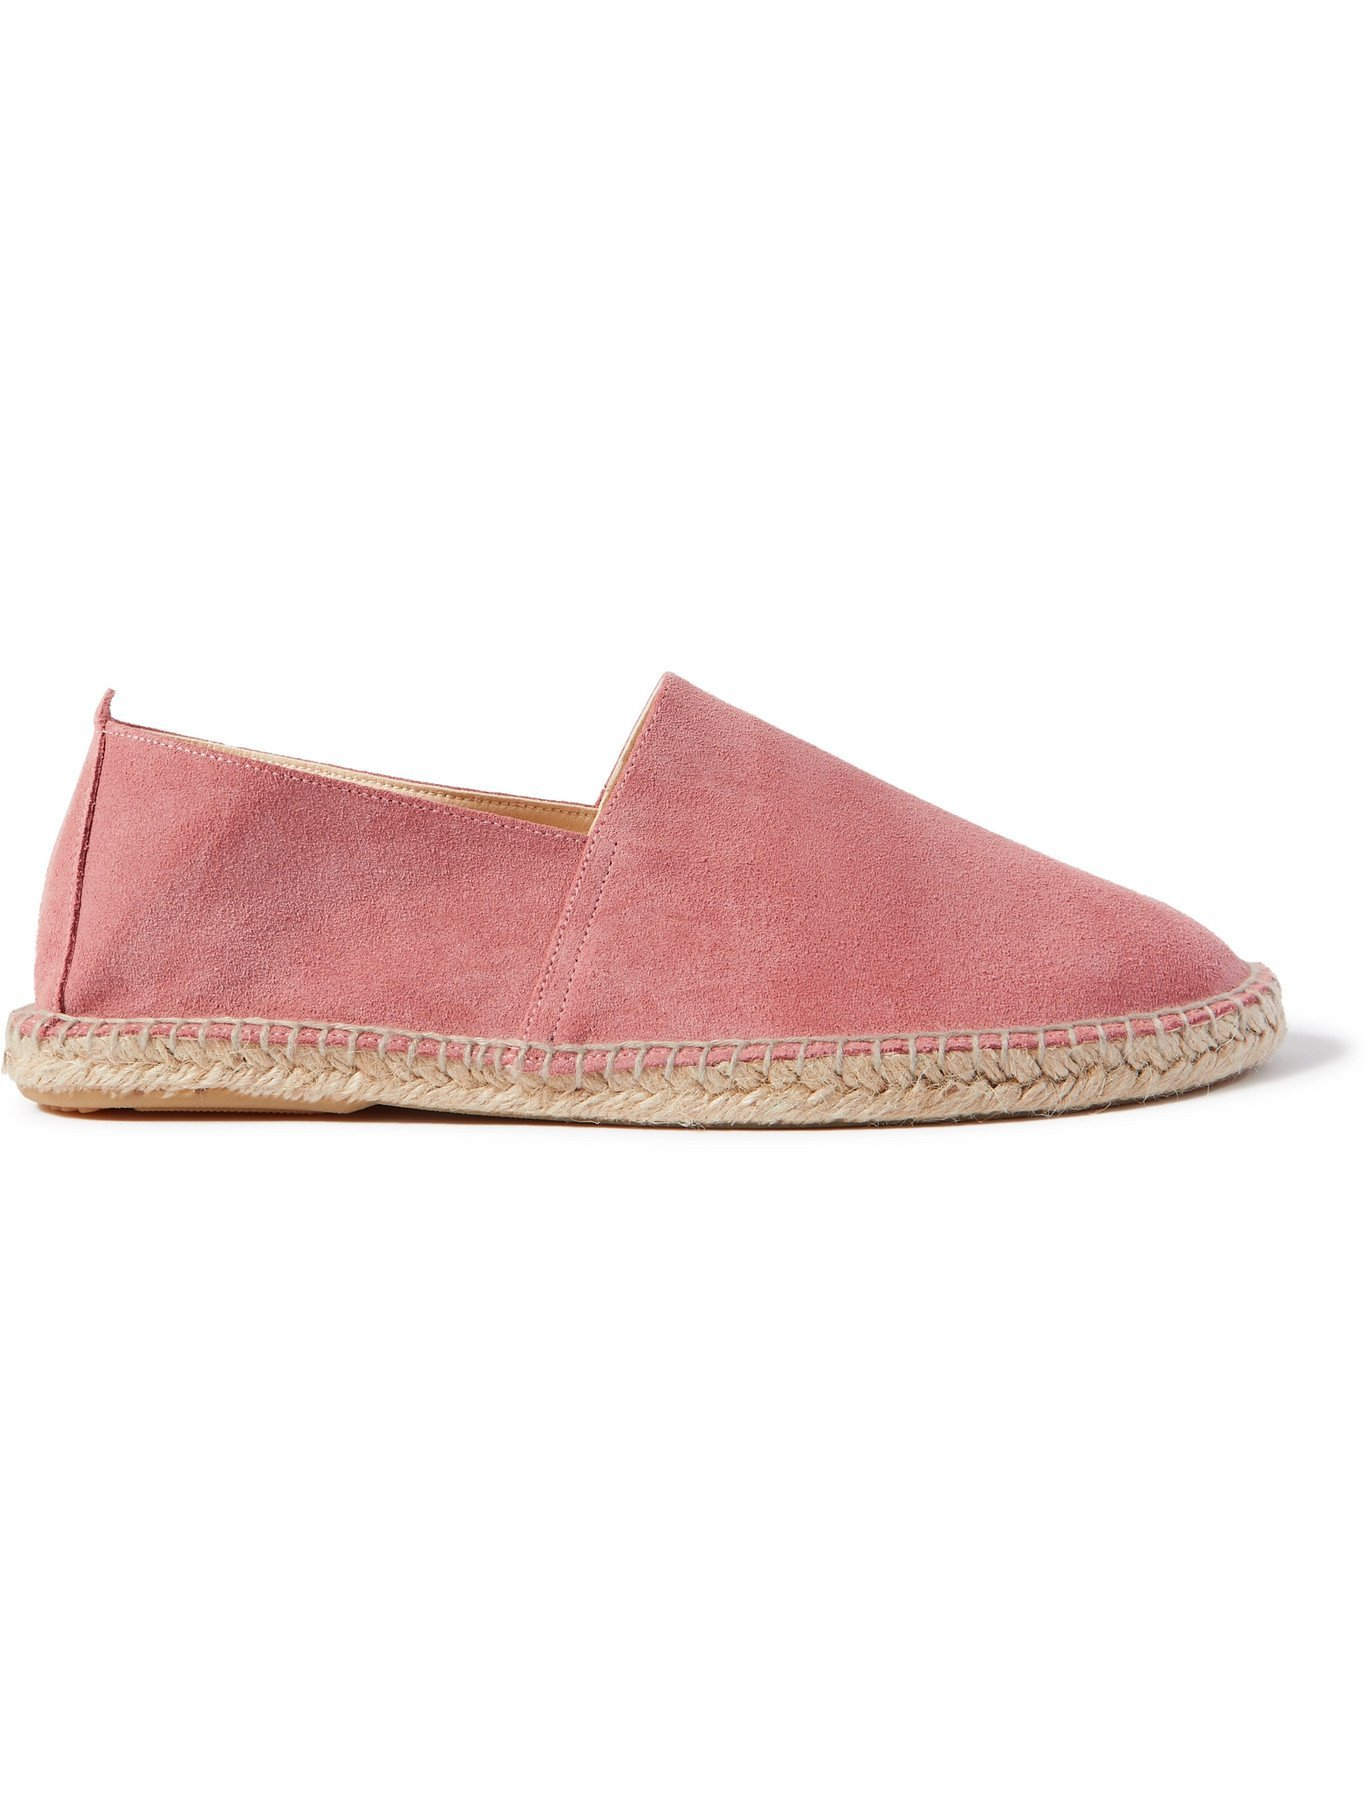 Photo: ANDERSON & SHEPPARD - Suede Espadrilles - Pink